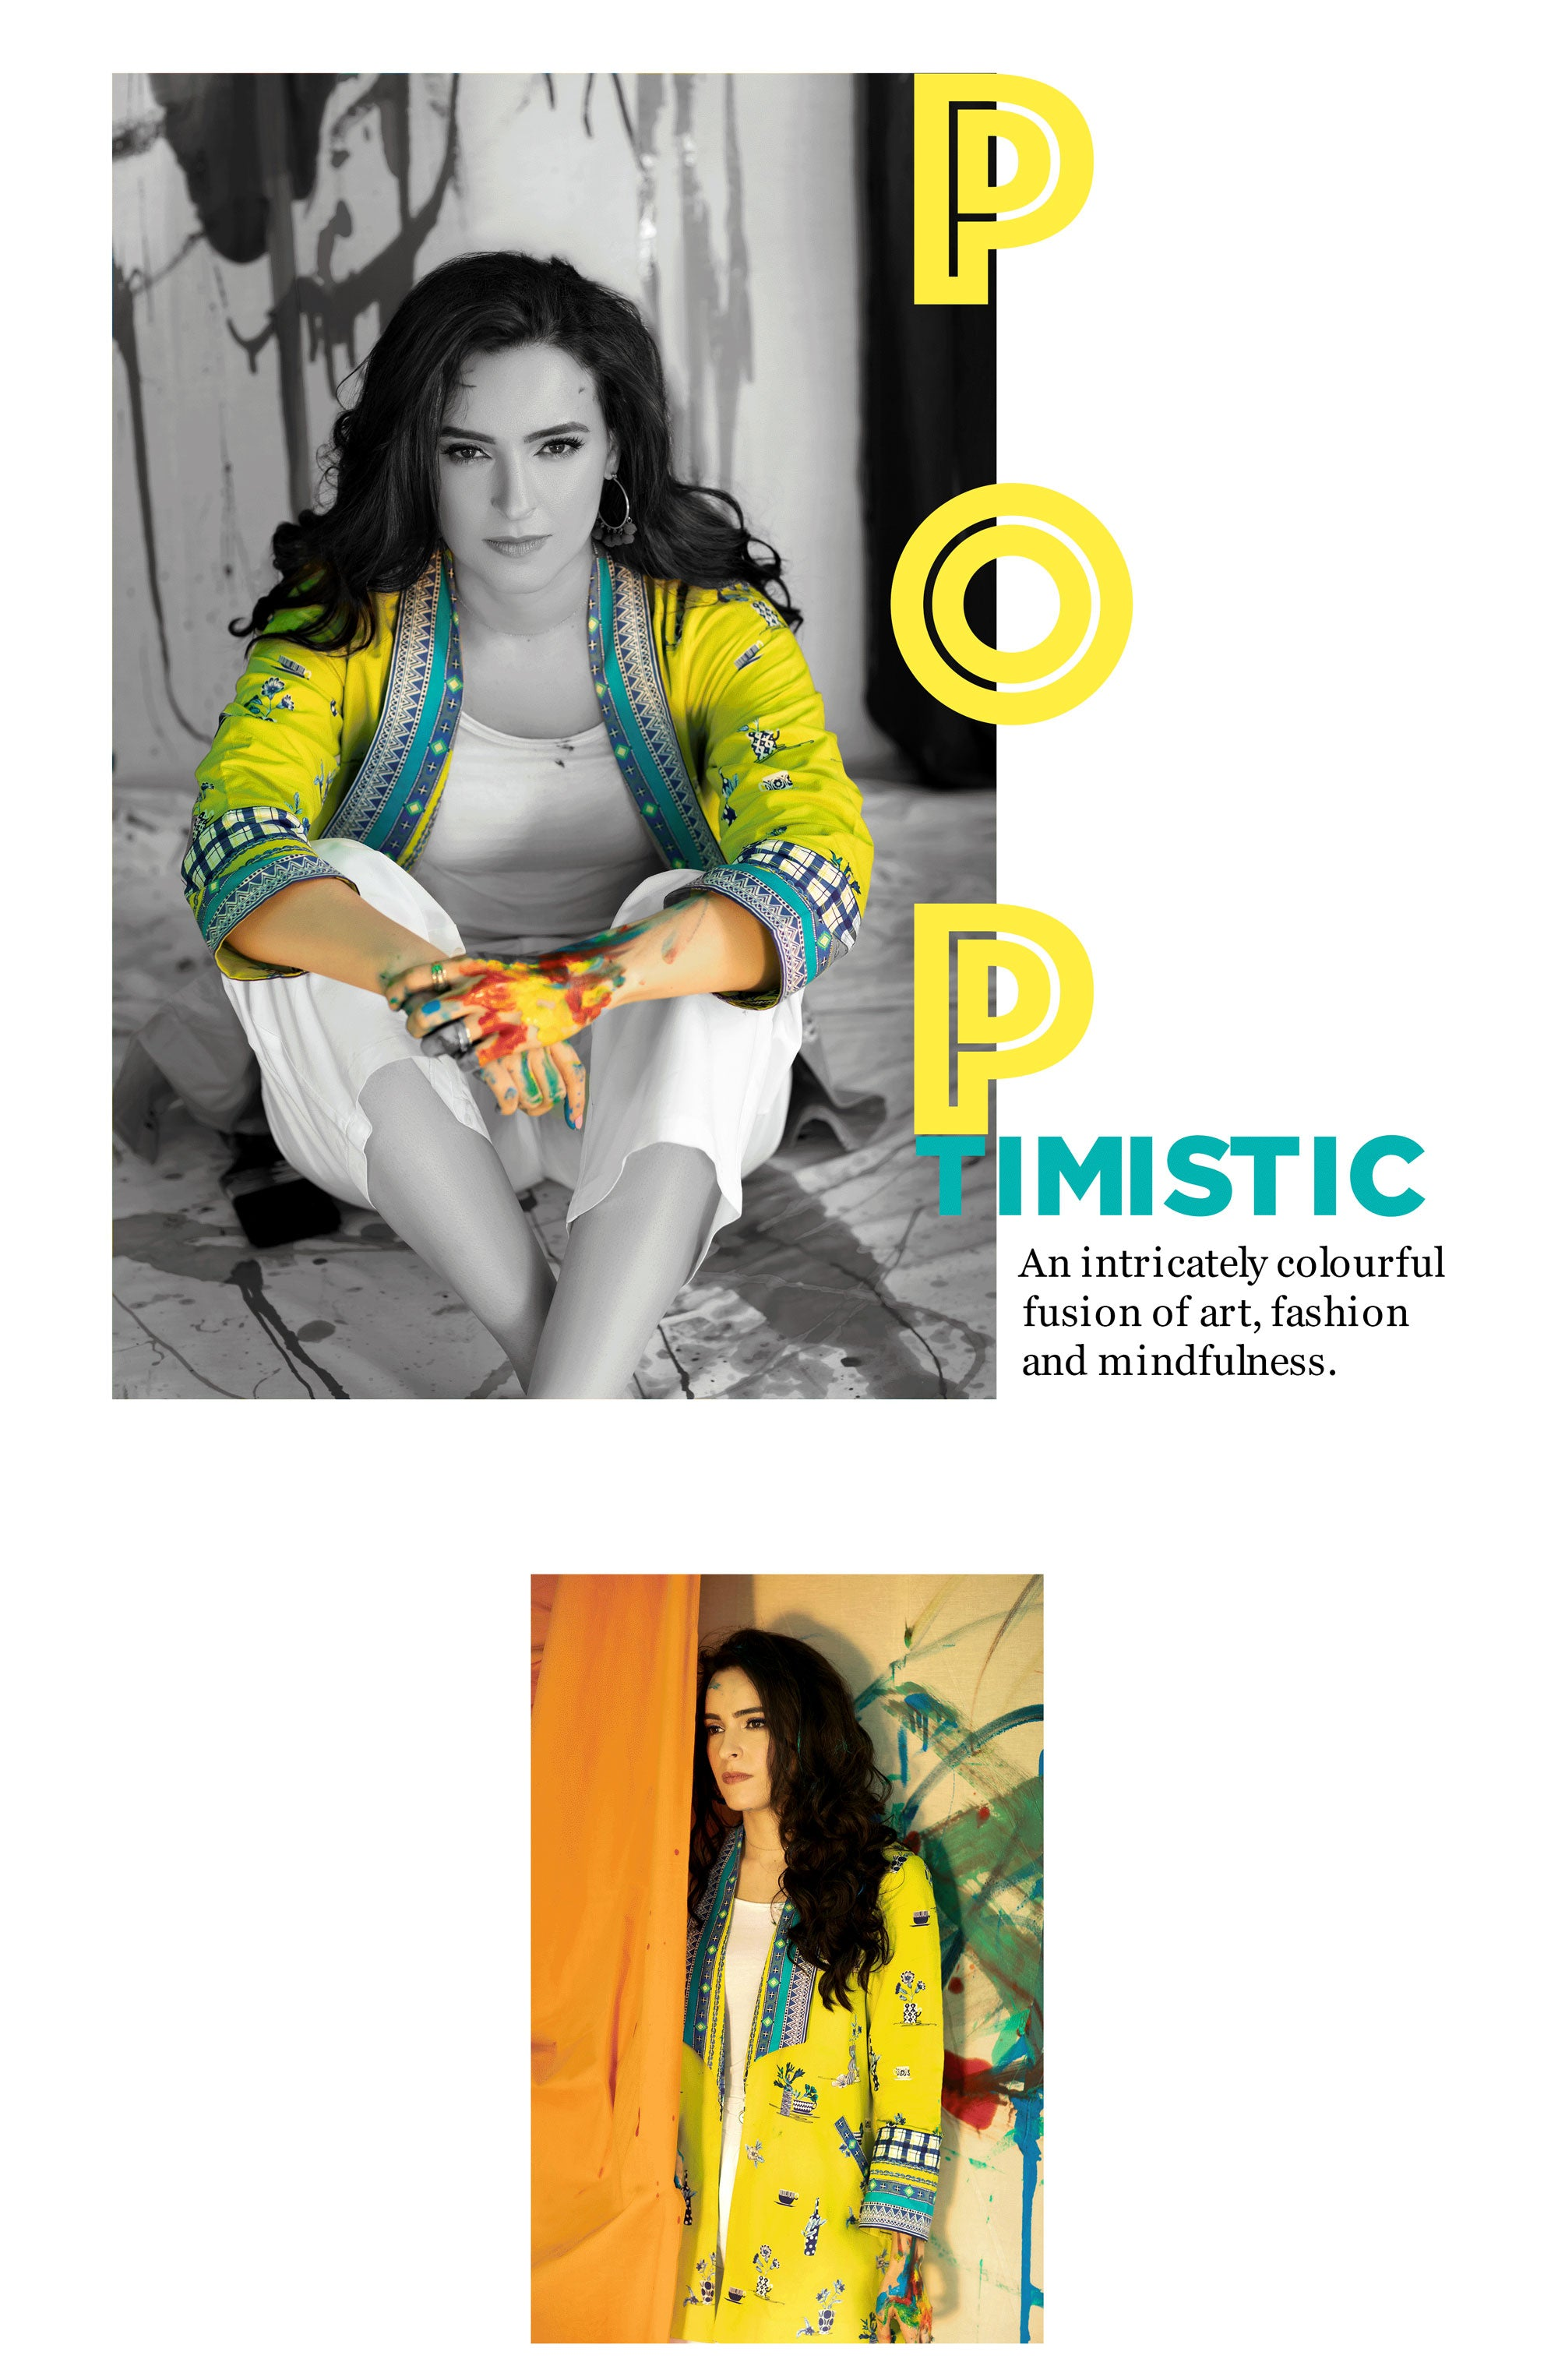 Poptimistic, An intricately colourful fusion of art, fashion and mindfulness.